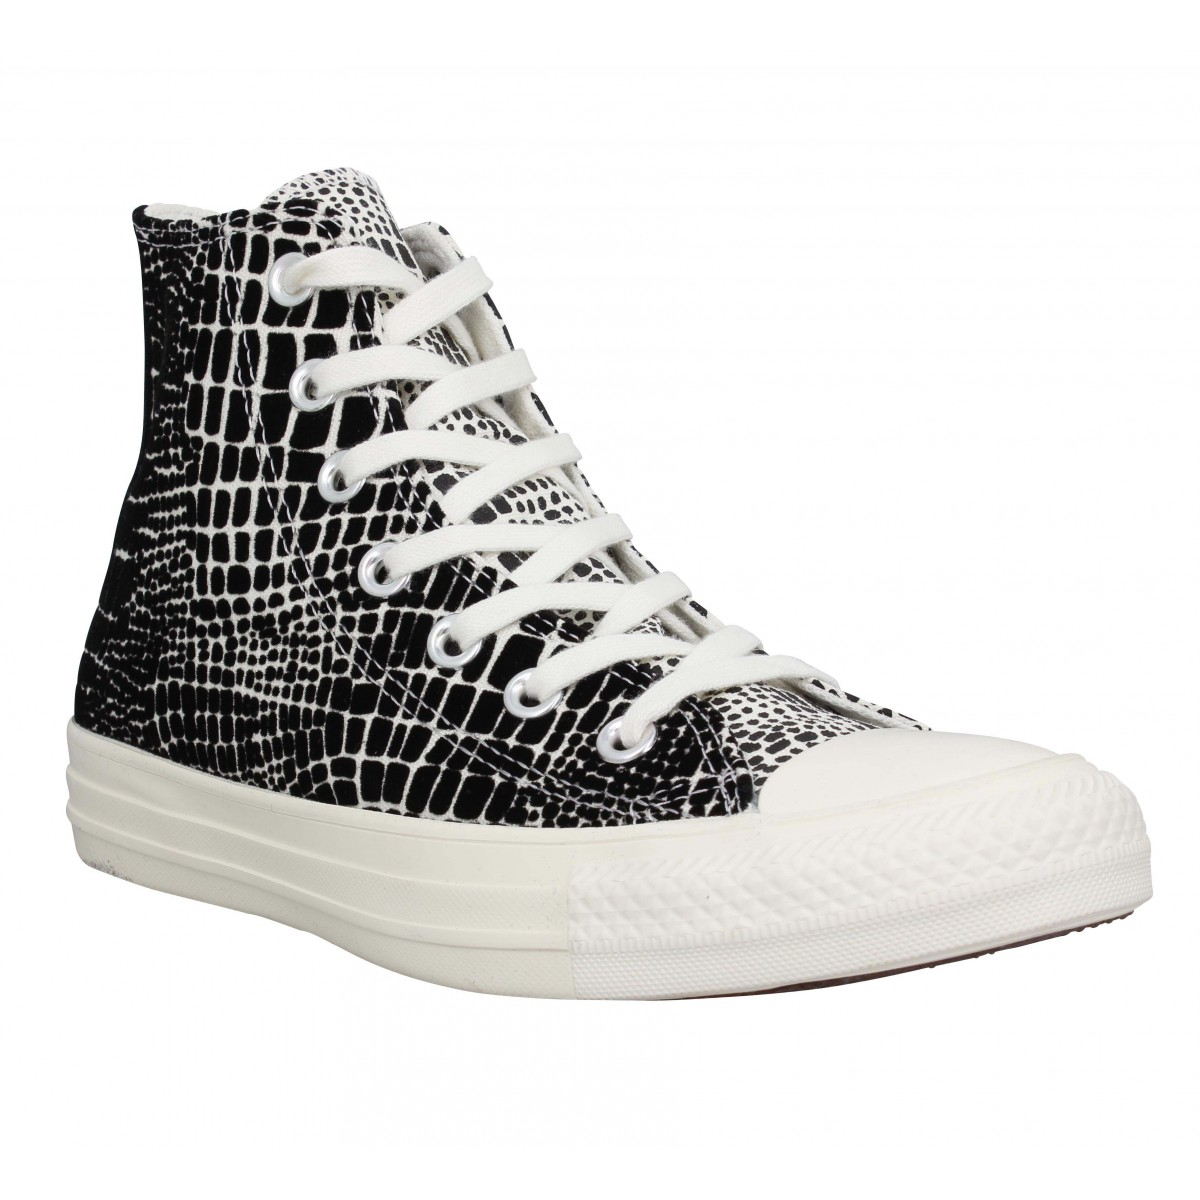 Baskets CONVERSE Chuck Taylor All Star Hi toile digitale Femme Noir Blanc